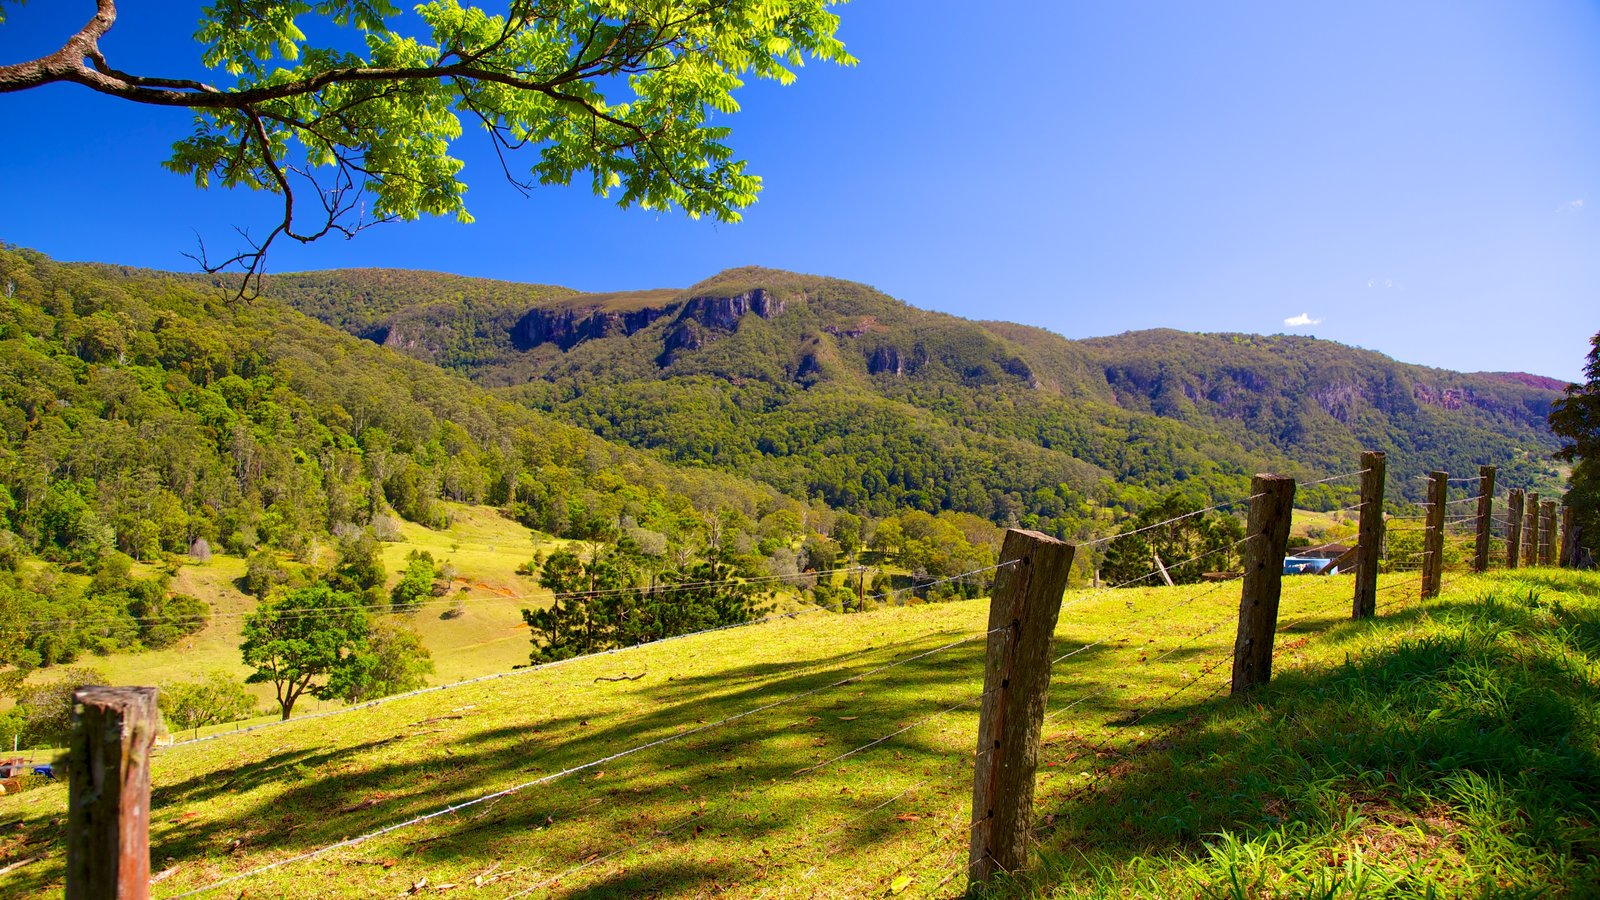 Springbrook National Park featuring tranquil scenes, landscape views and a park